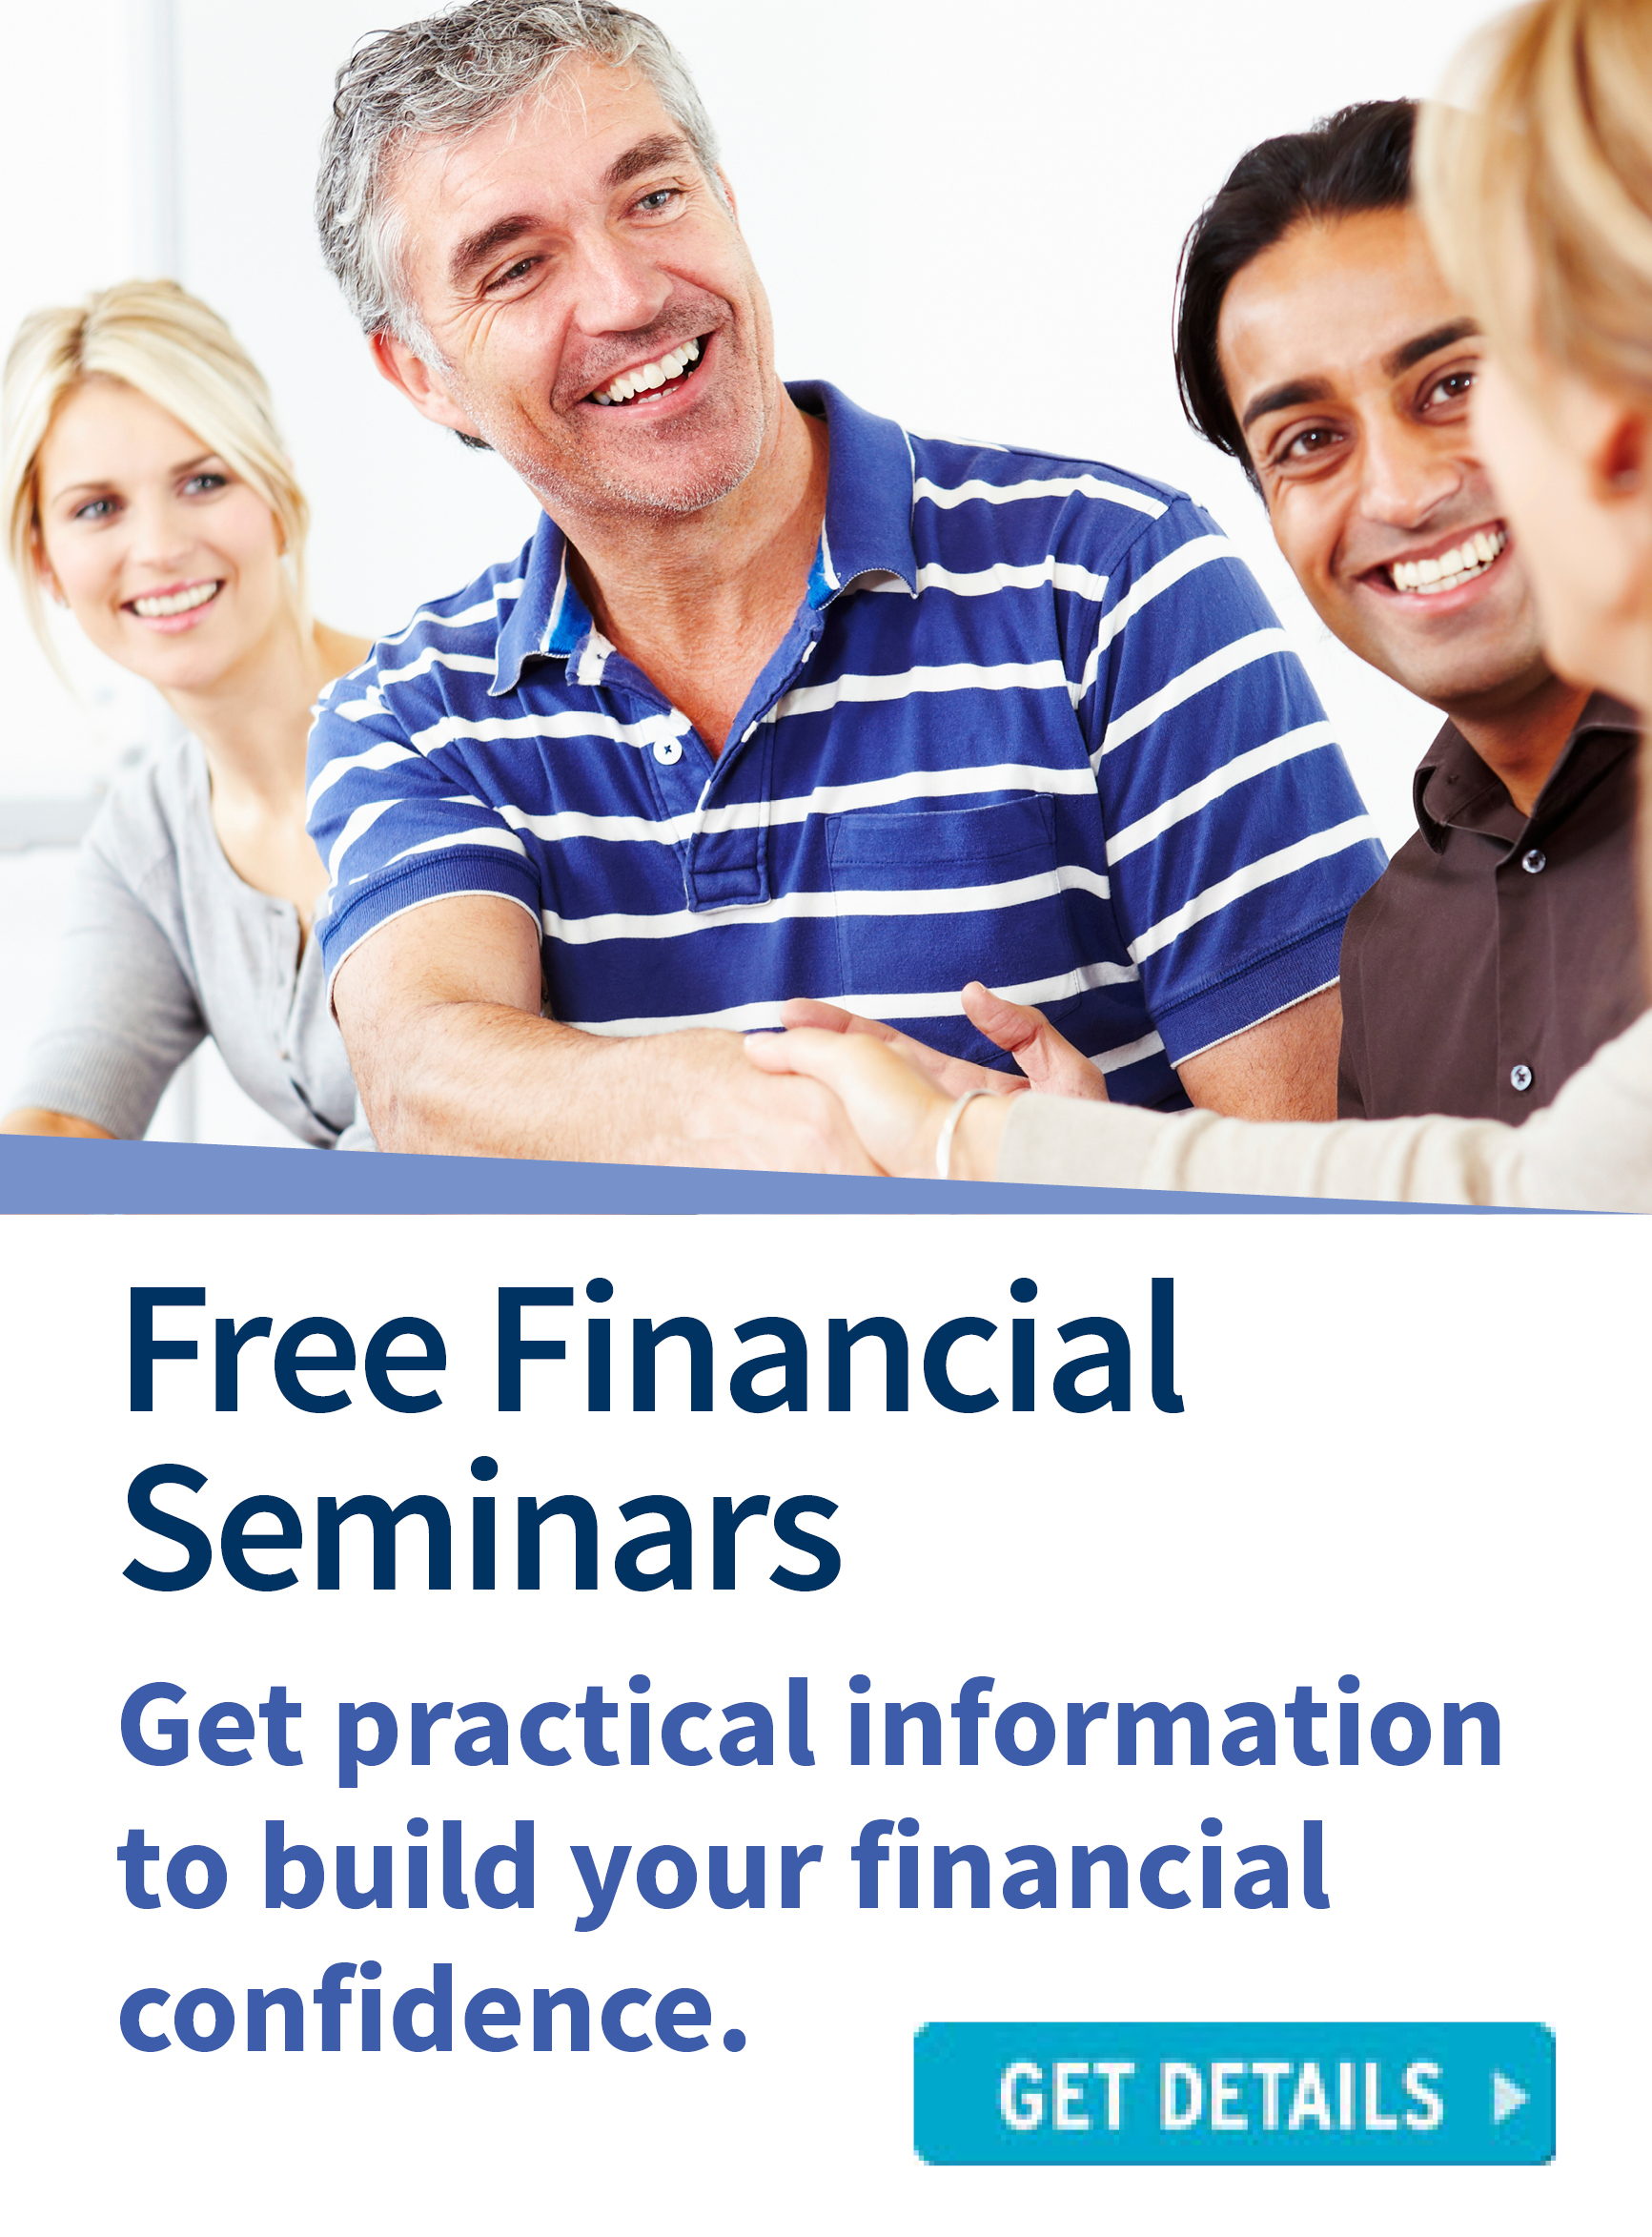 Free financial seminars. Get practical information to build your financial confidence.